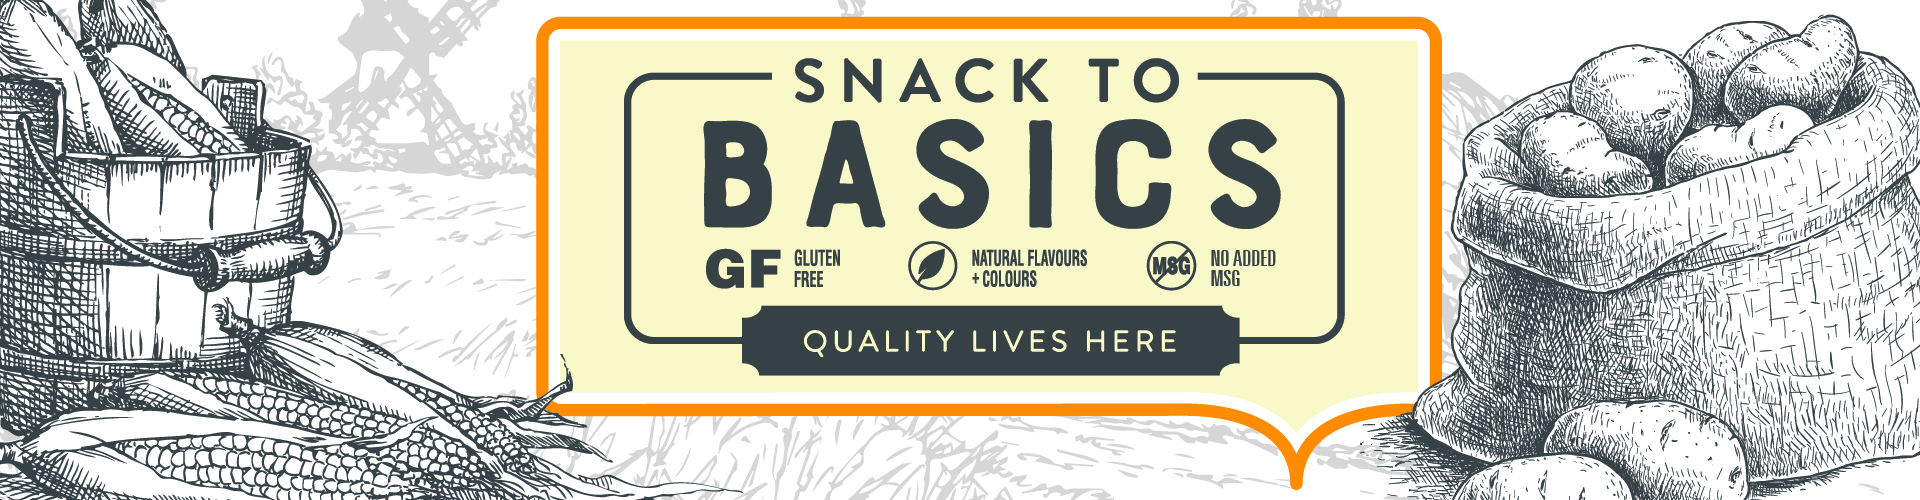 Snack to Basics 4